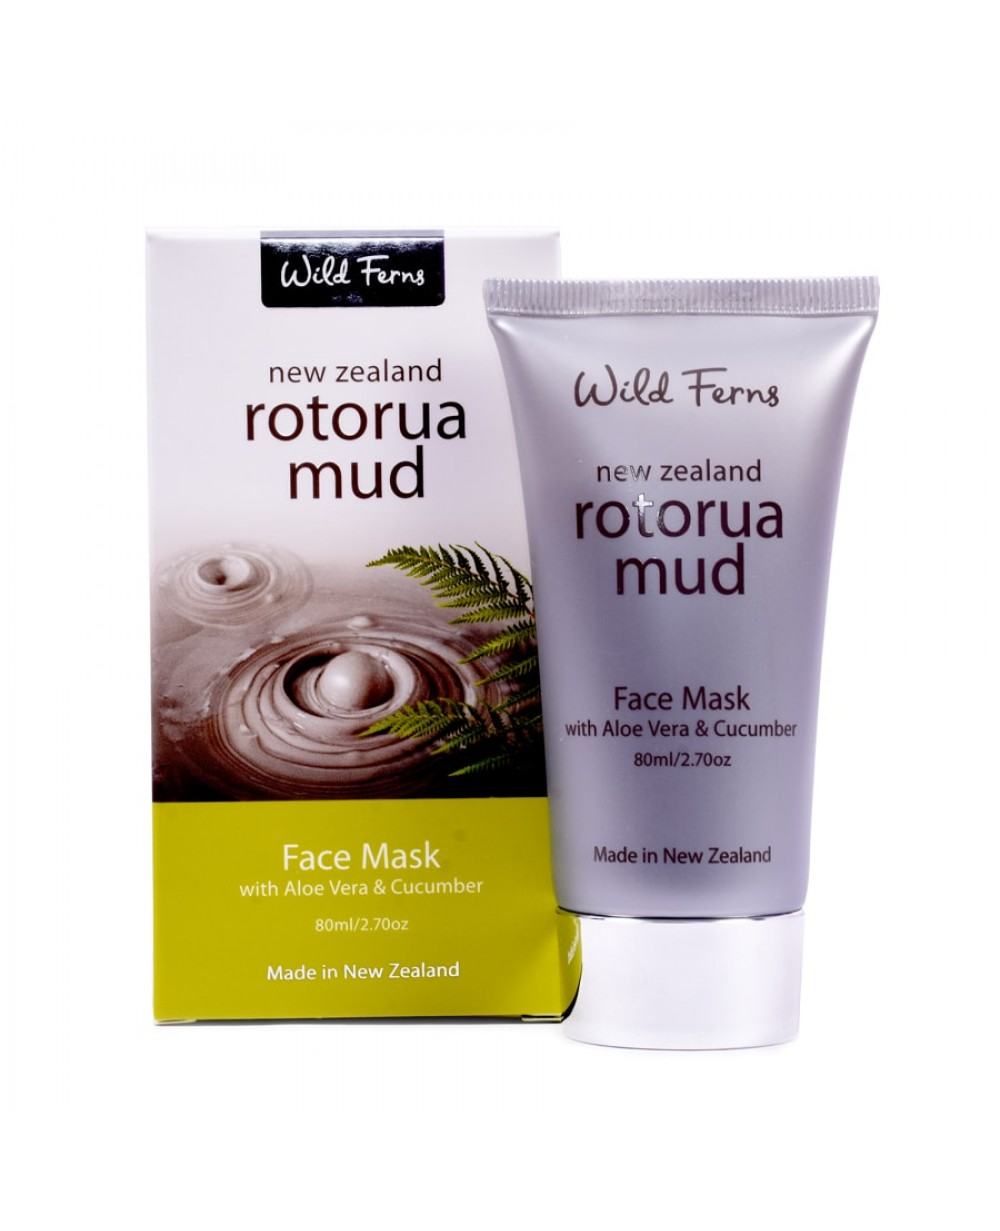 WILD FERNS ROTORUA MUD MASK ALOE VERA & CUCUMBER 80 ML